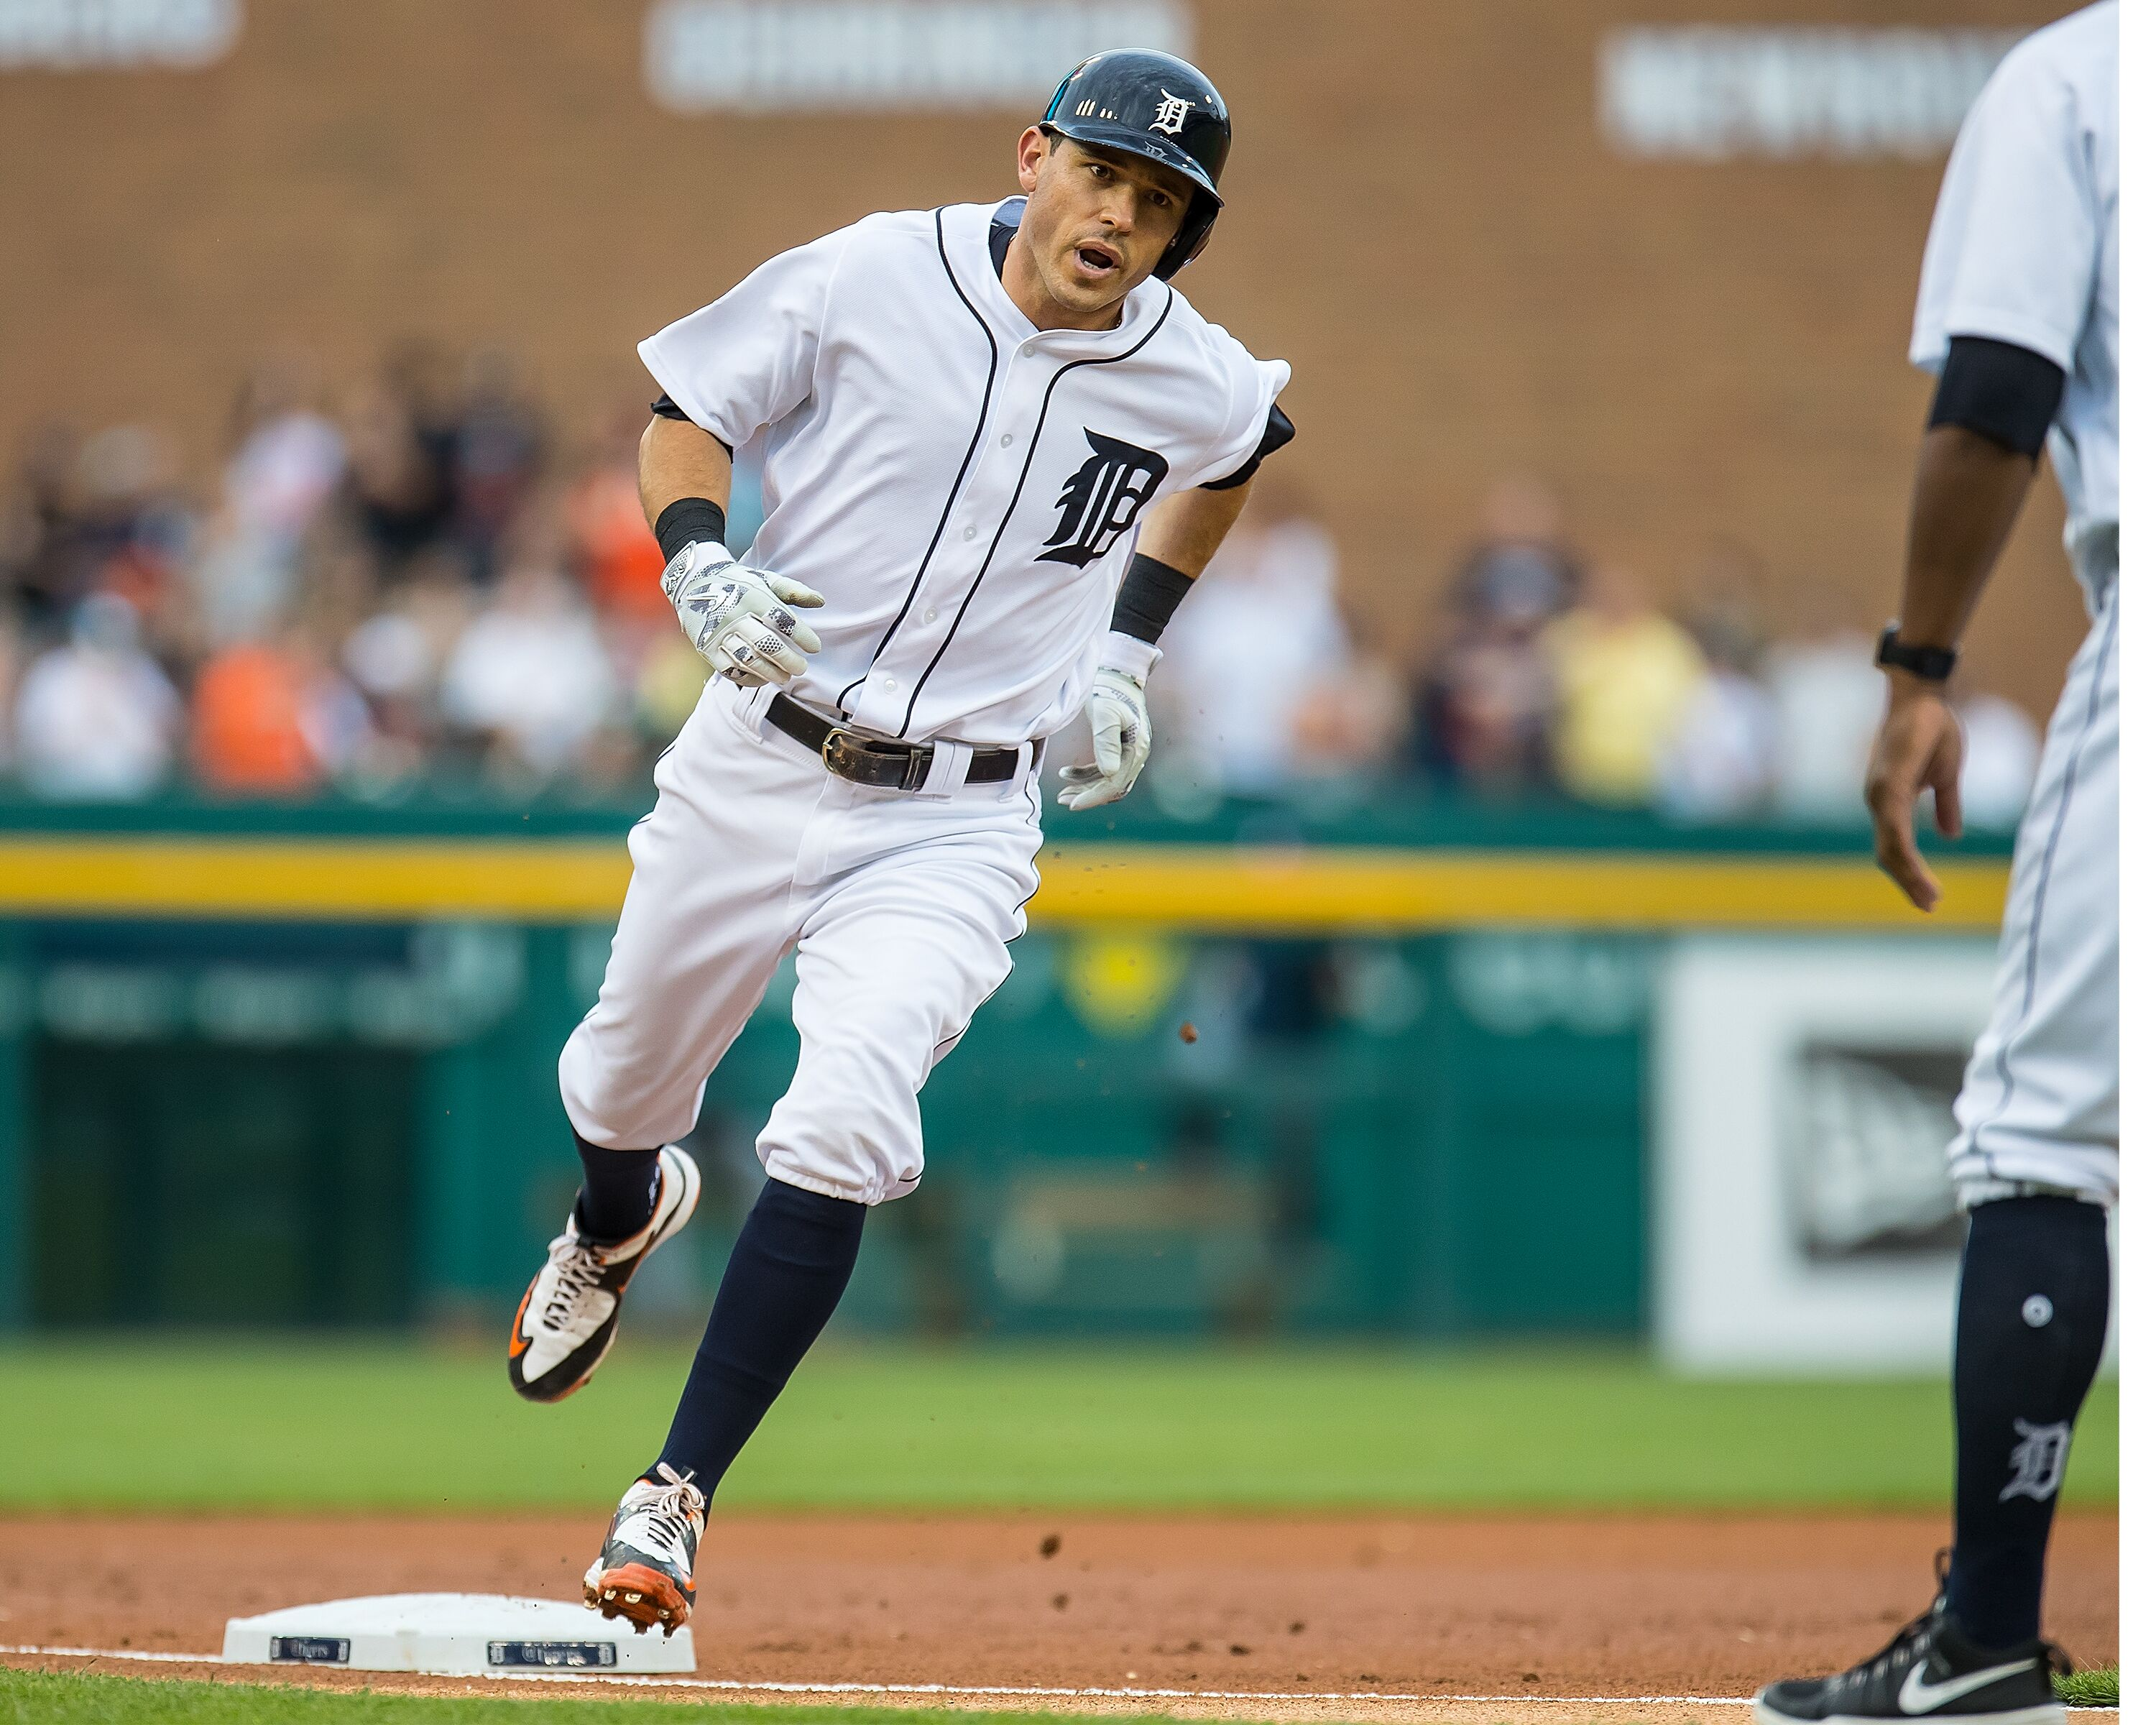 696725994-tampa-bay-rays-v-detroit-tigers.jpg